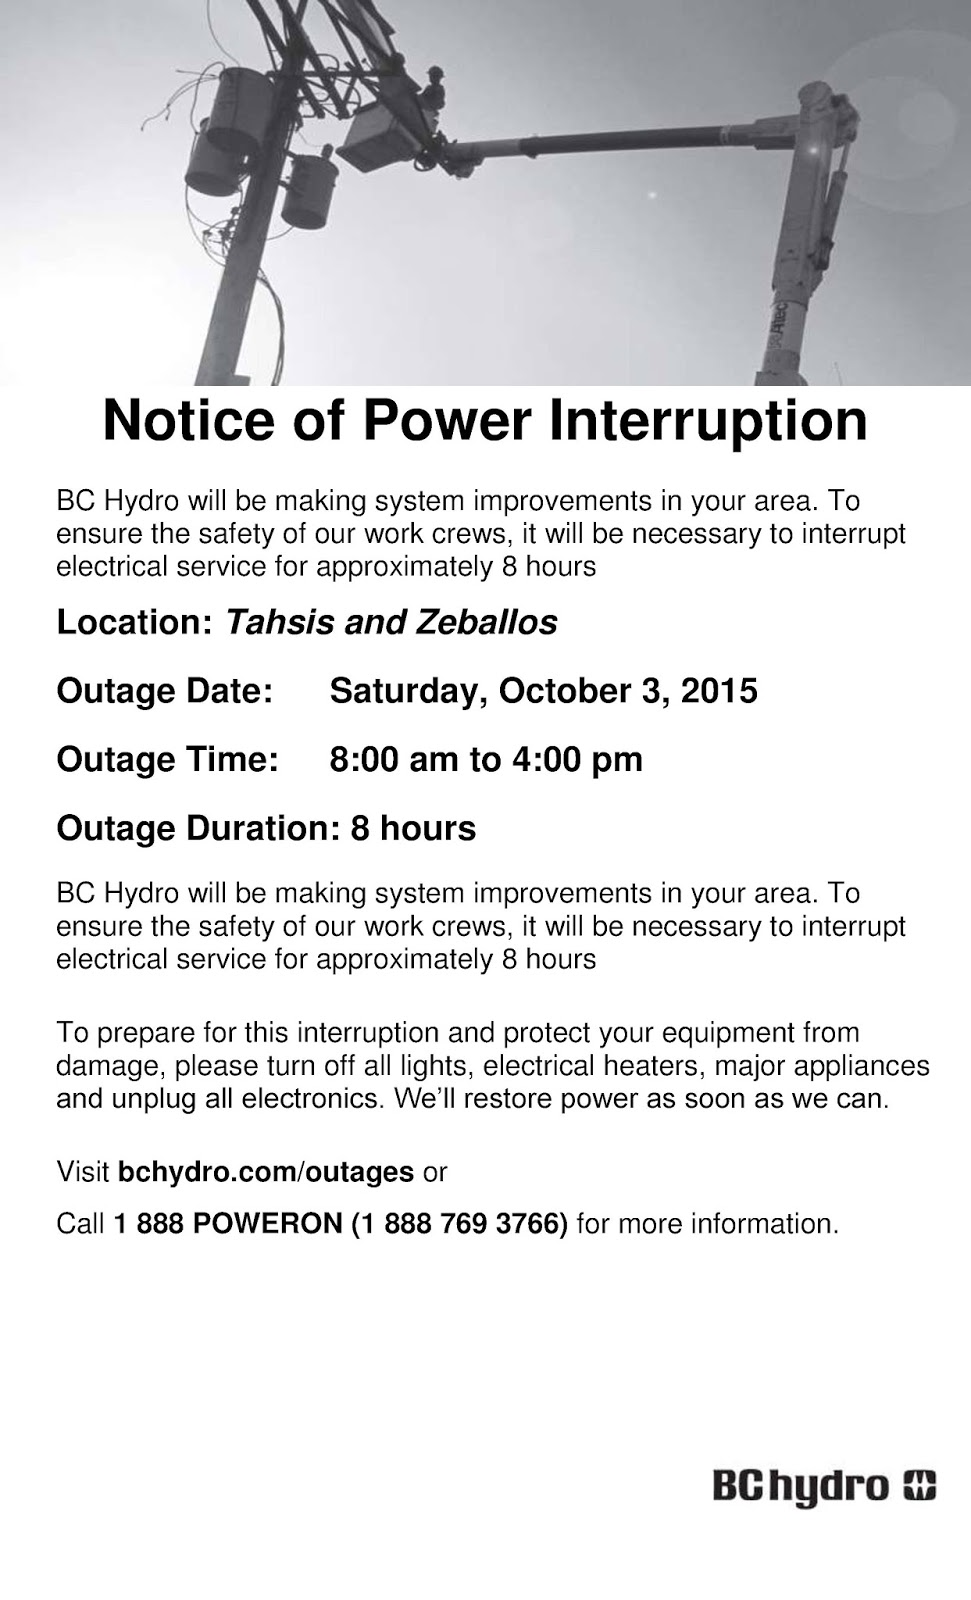 Tahsis Living: Power Outage Planned by BC Hydro